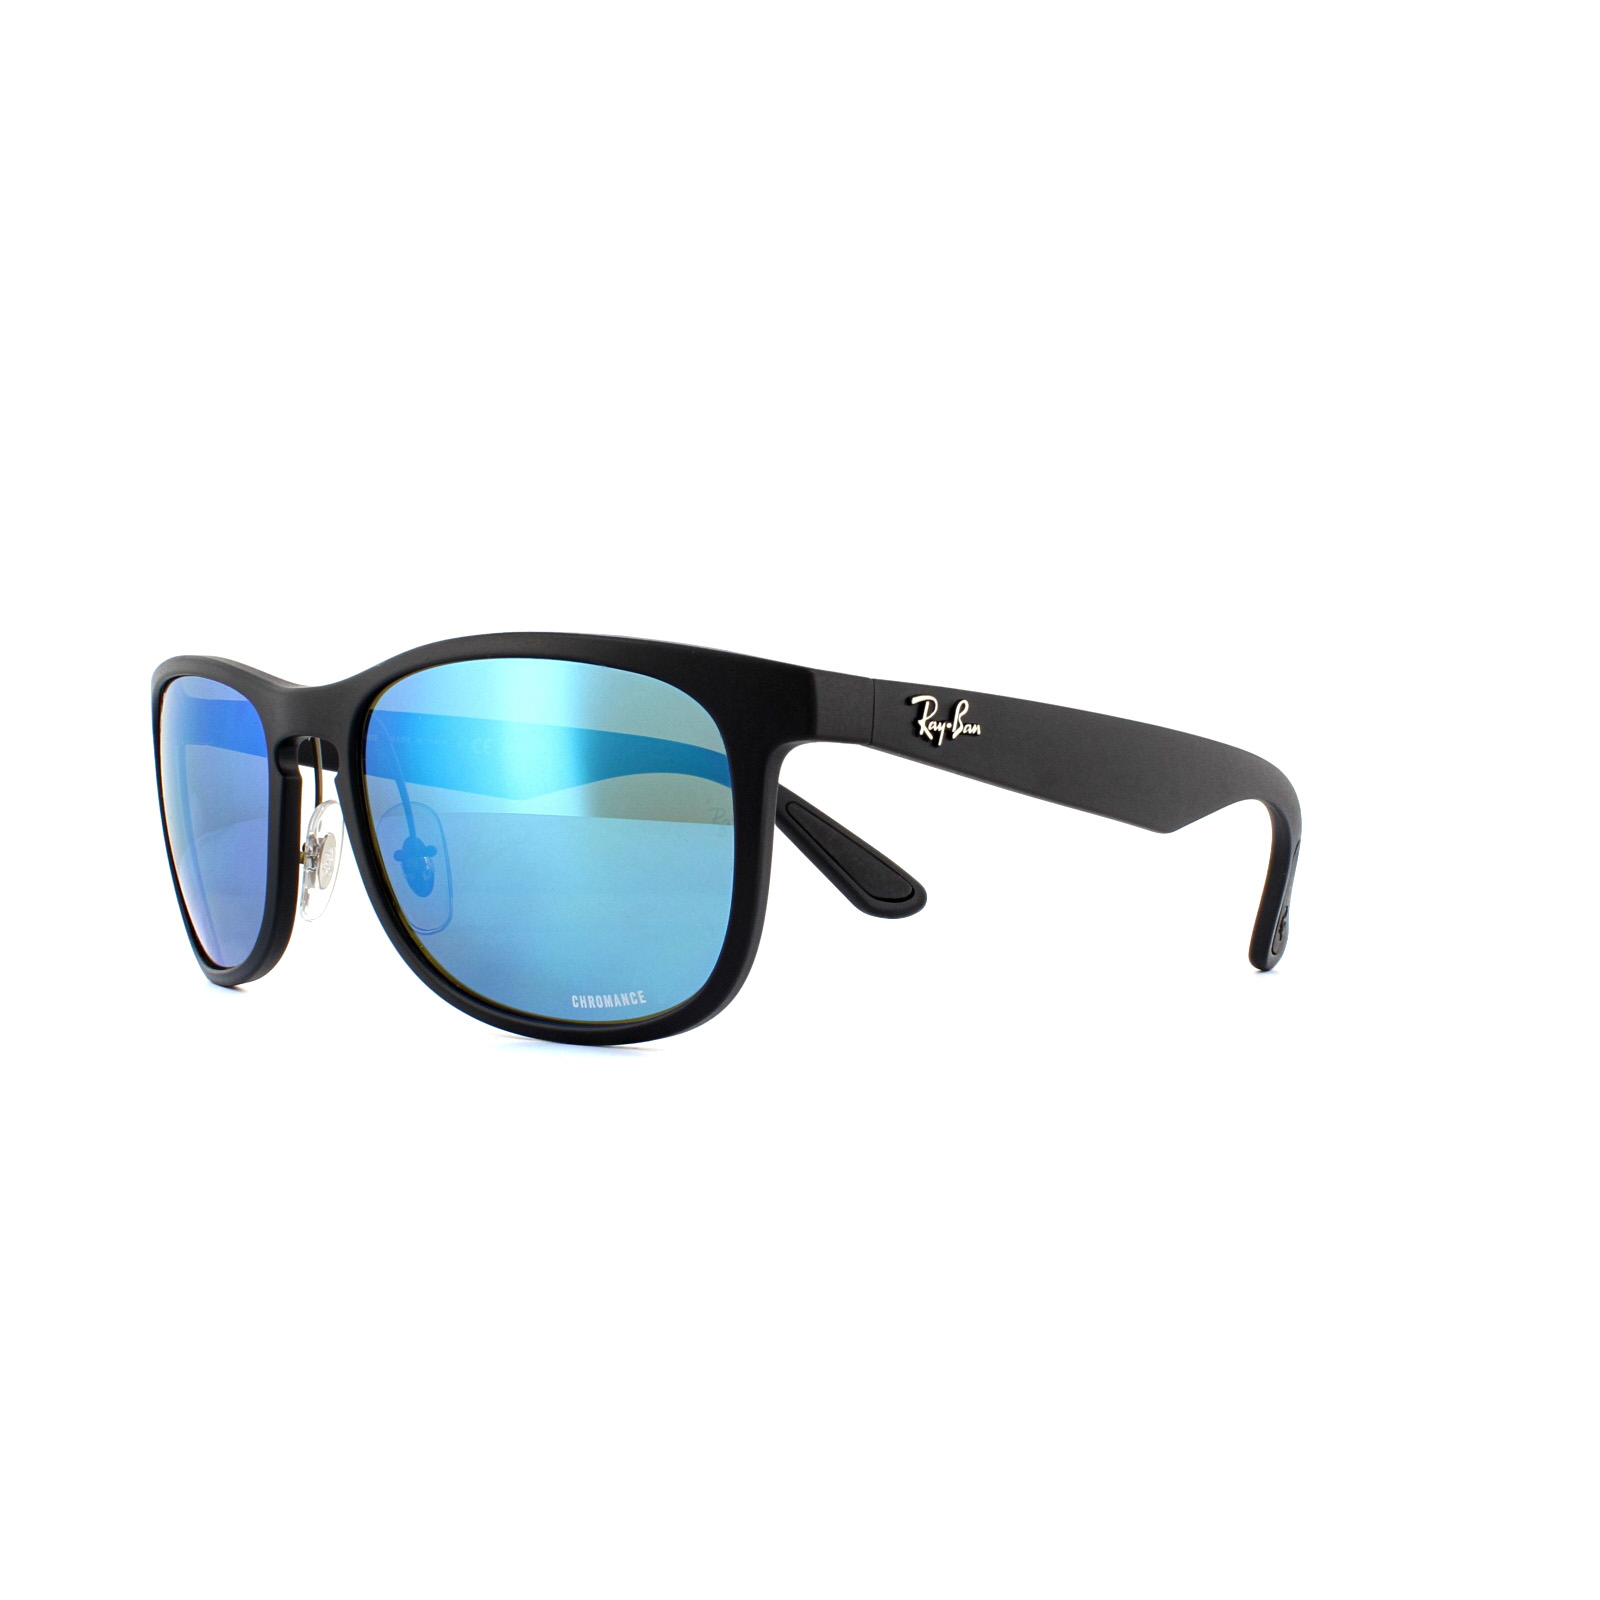 Ray Ban Sunglasses Rb4263 601sa1 Matte Black Blue Mirror Polarized